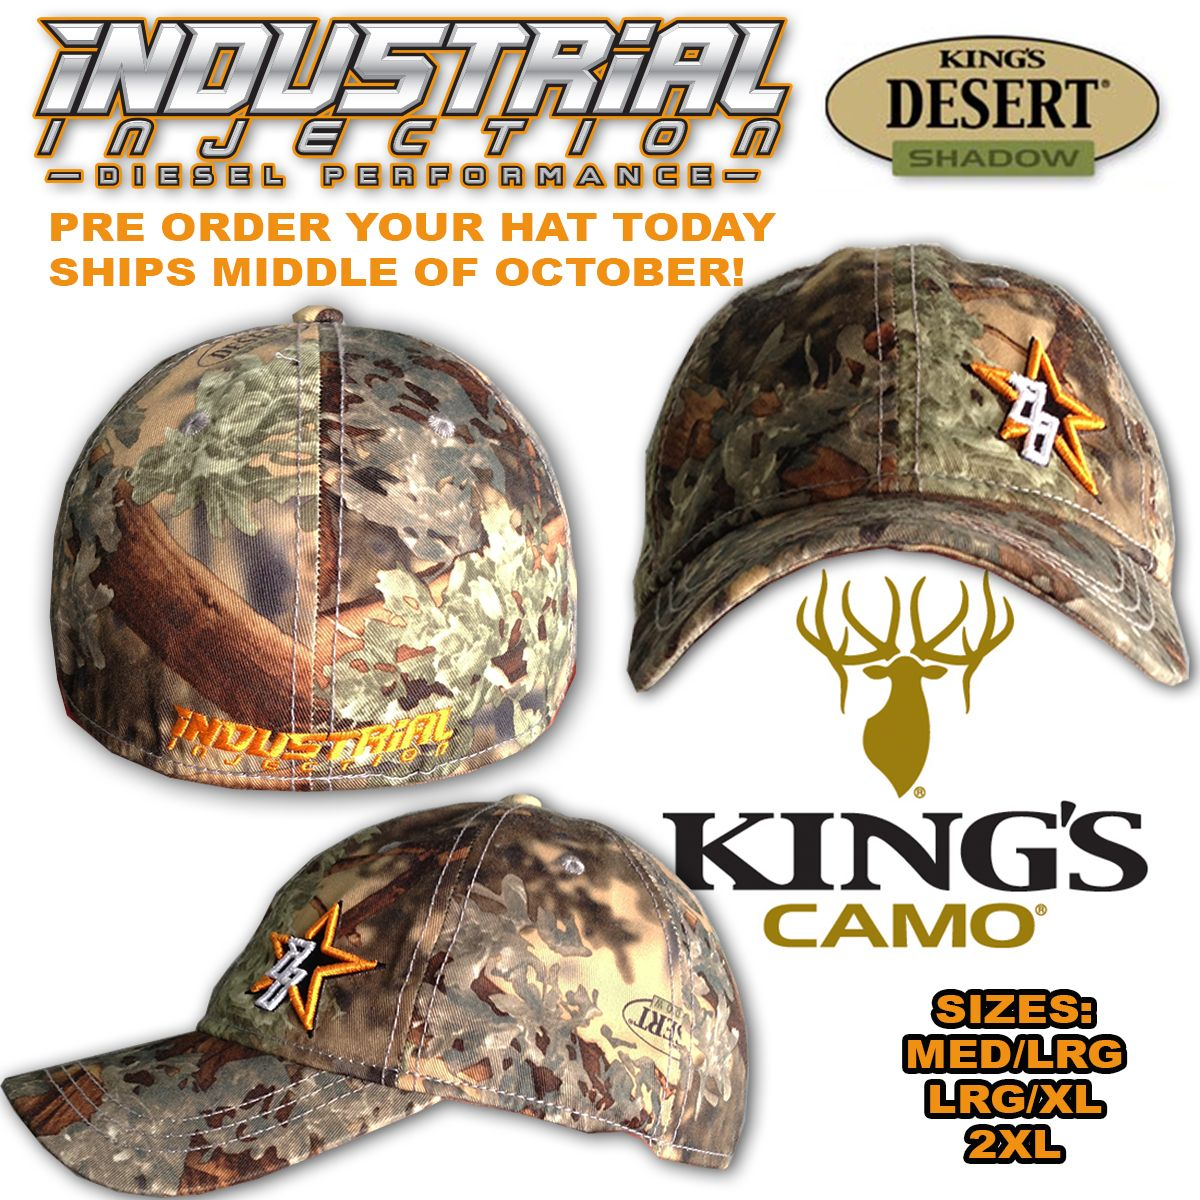 Shop | Category: Mens Apparel | Product: Kings Camo Desert